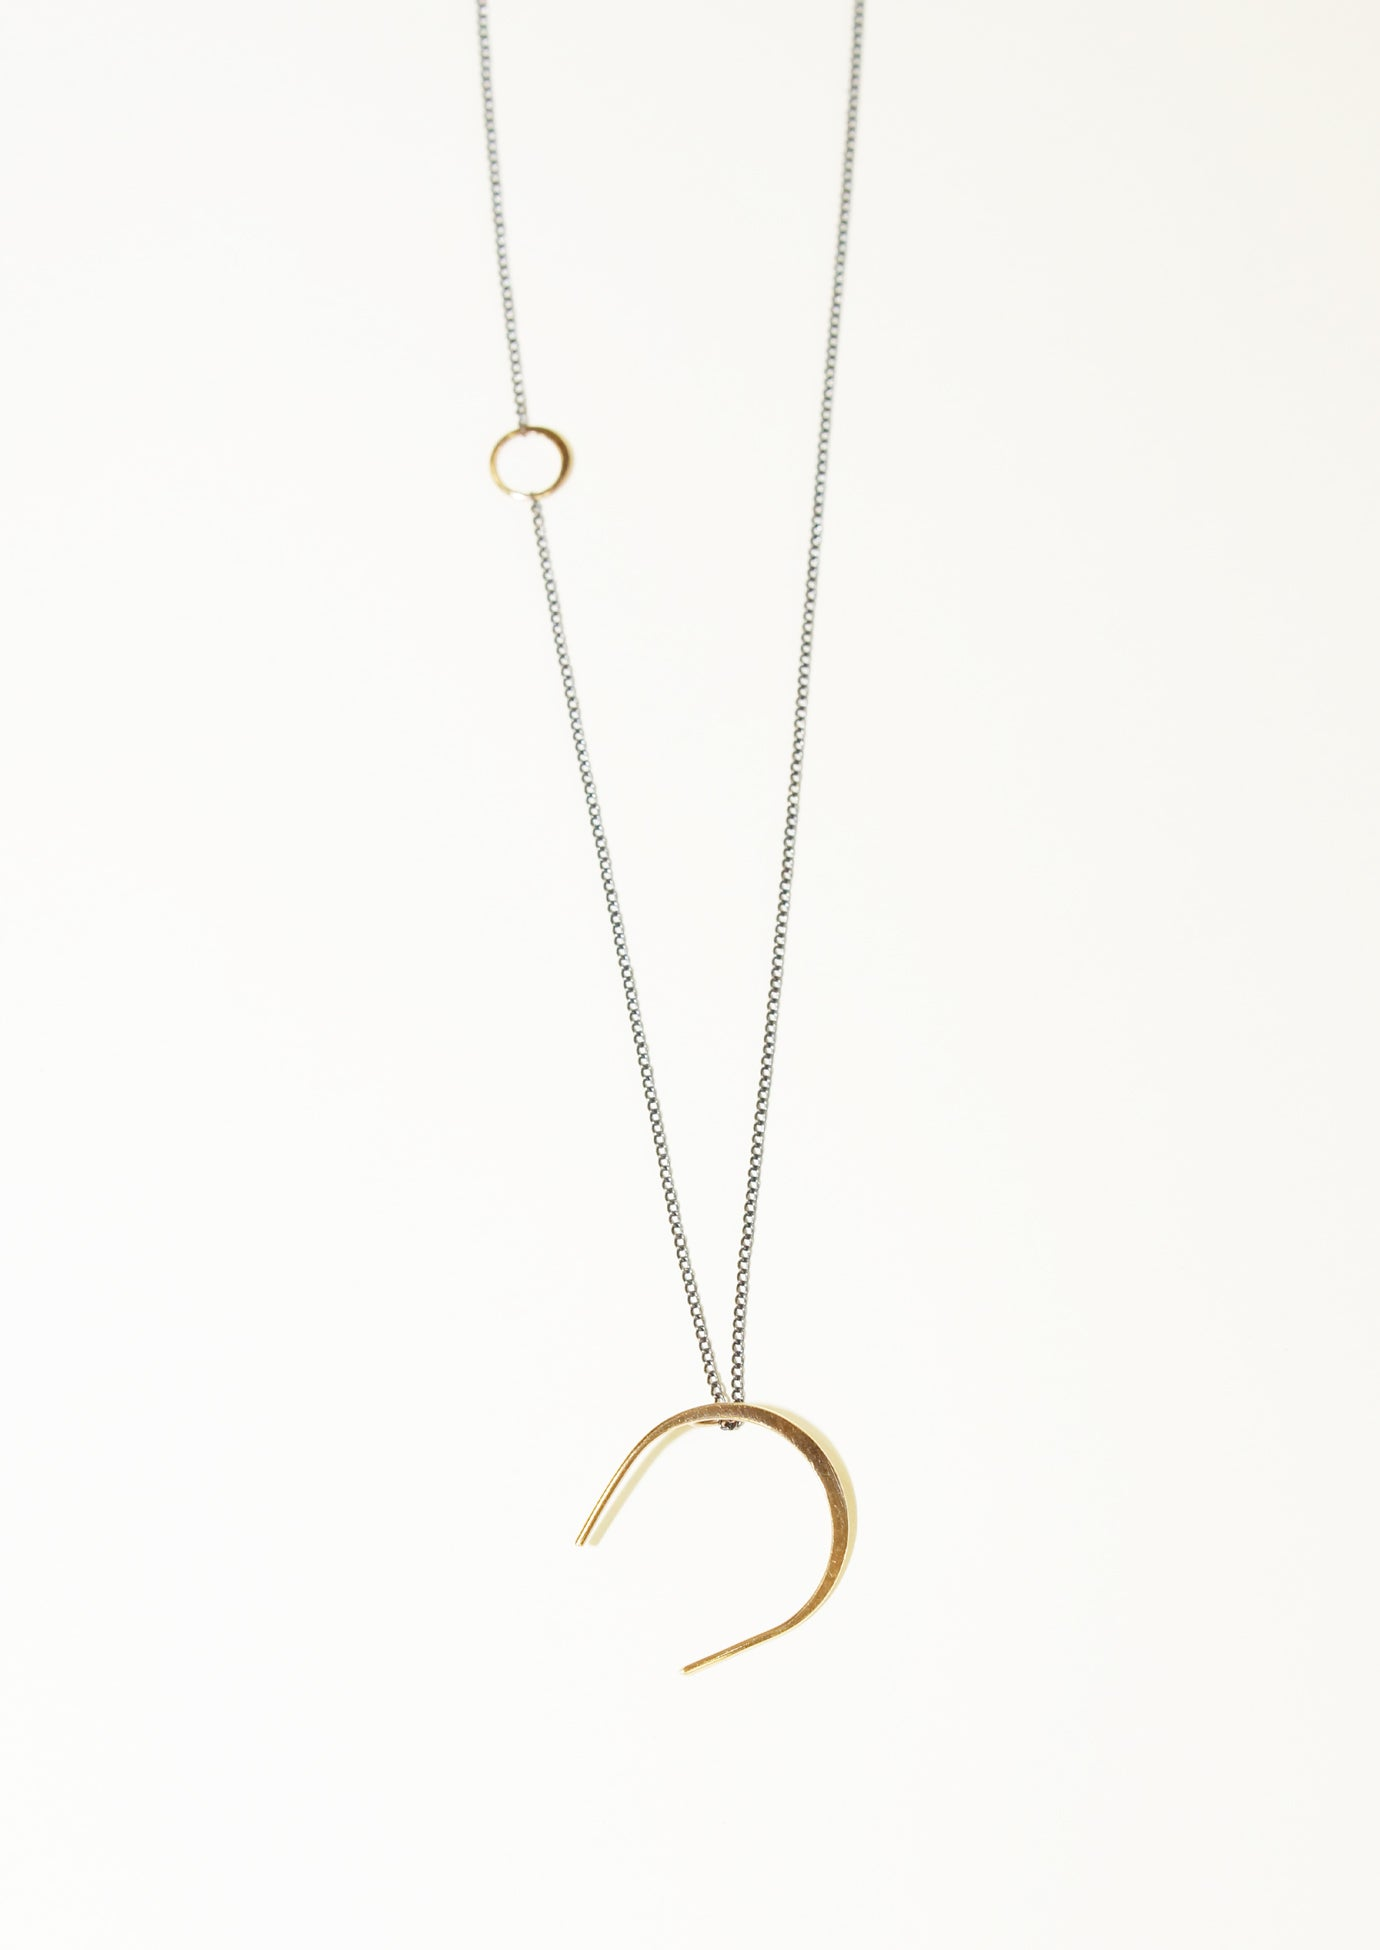 Melissa Joy Manning 14K Gold Horse Shoe Necklace with Oxidized Silver Chain